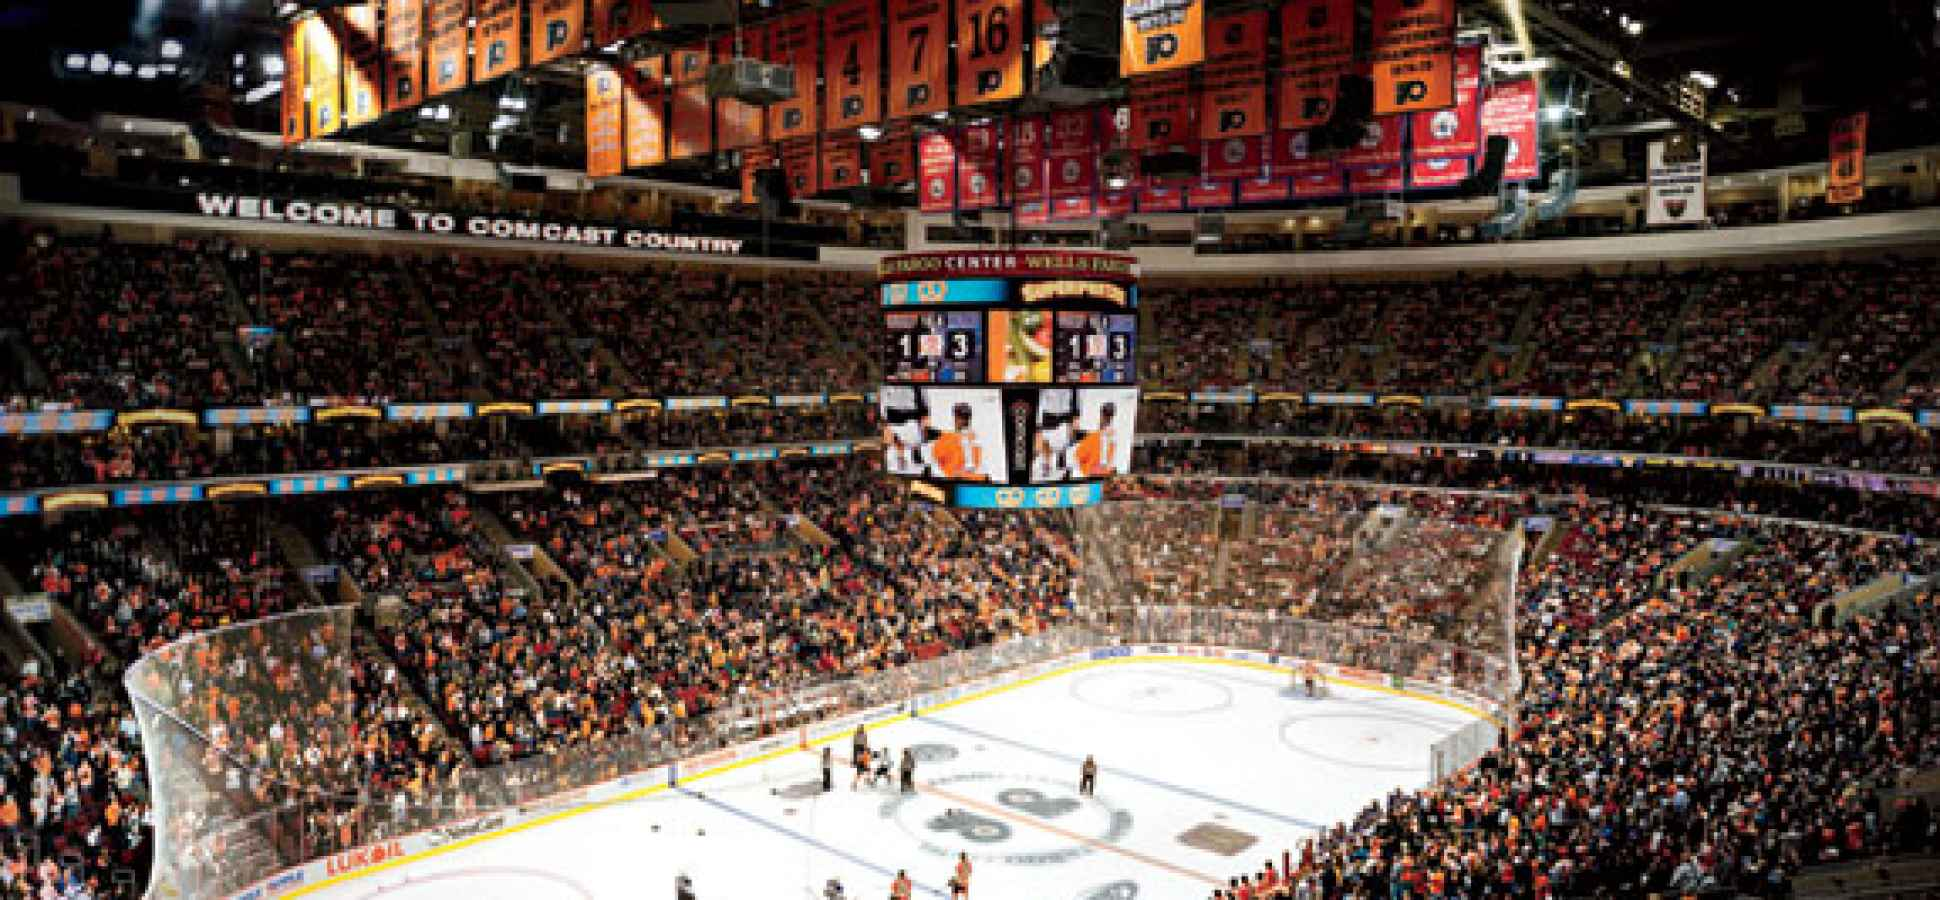 The business of a hockey game at the wells fargo center in philadelphia inc com